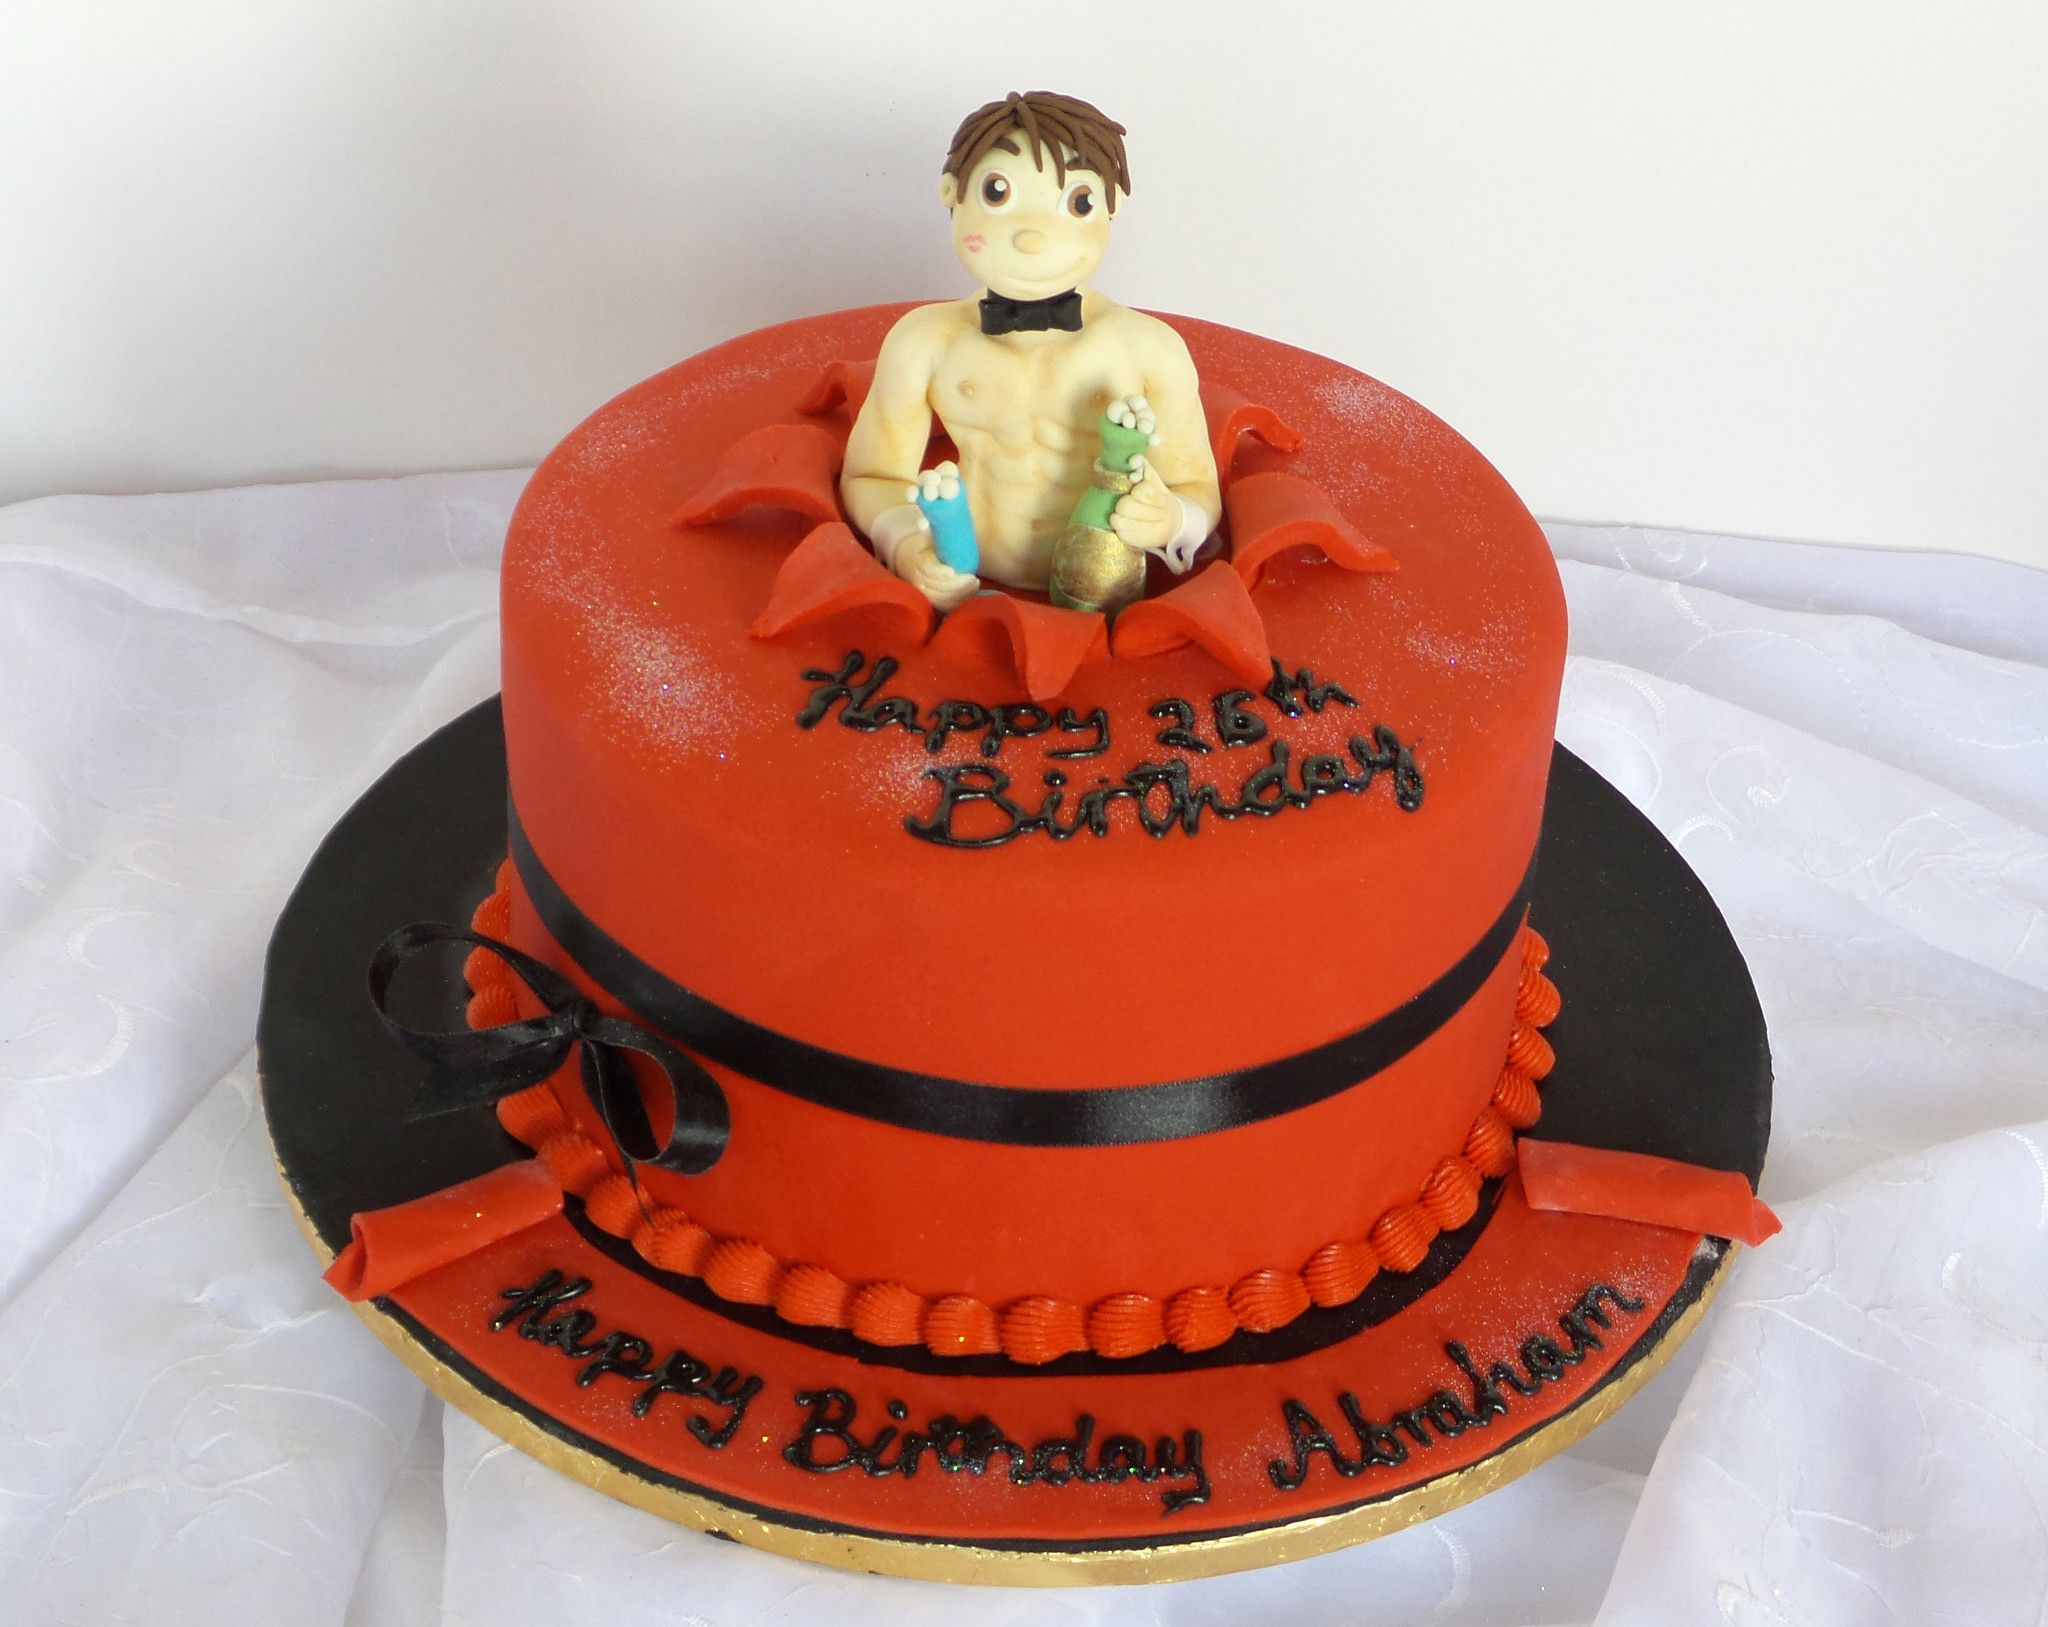 HttpsflickrpEduMF Sexy Shirtless Guy Fondant Topper - Birthday cake for a guy